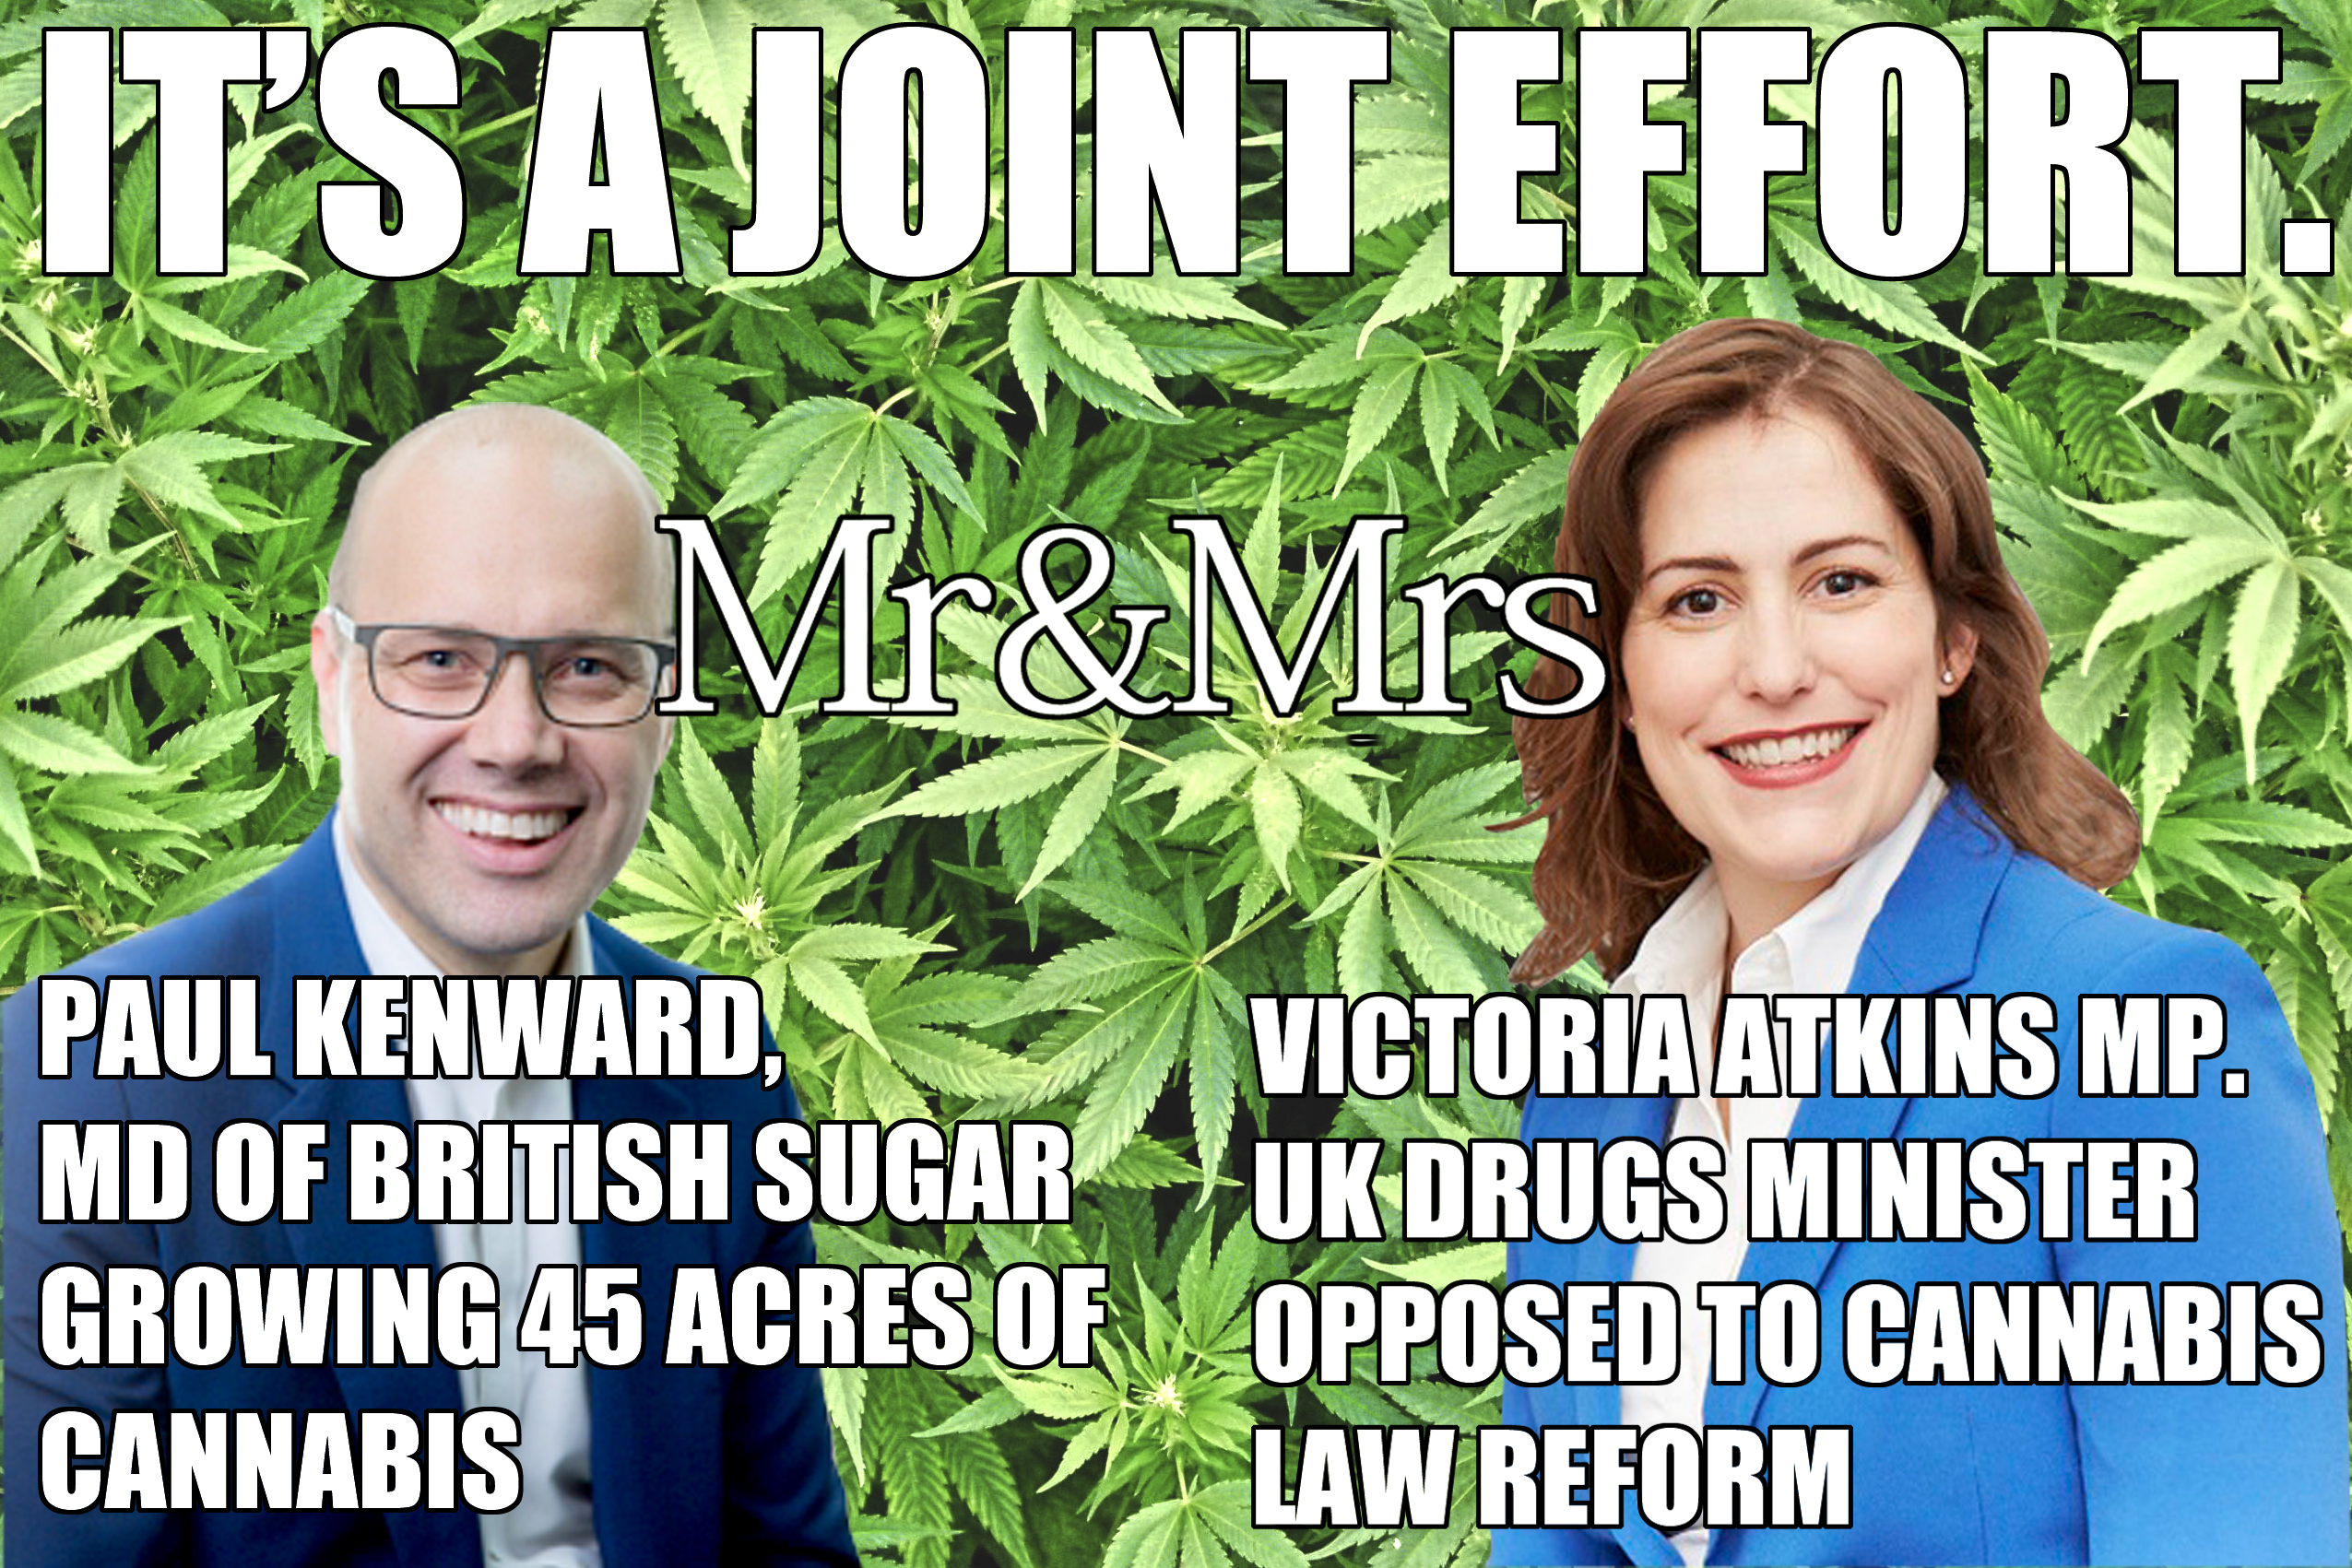 A Joint Effort - Victoria Atkins MP and Paul Kenward growing 45 Acres of Cannabis